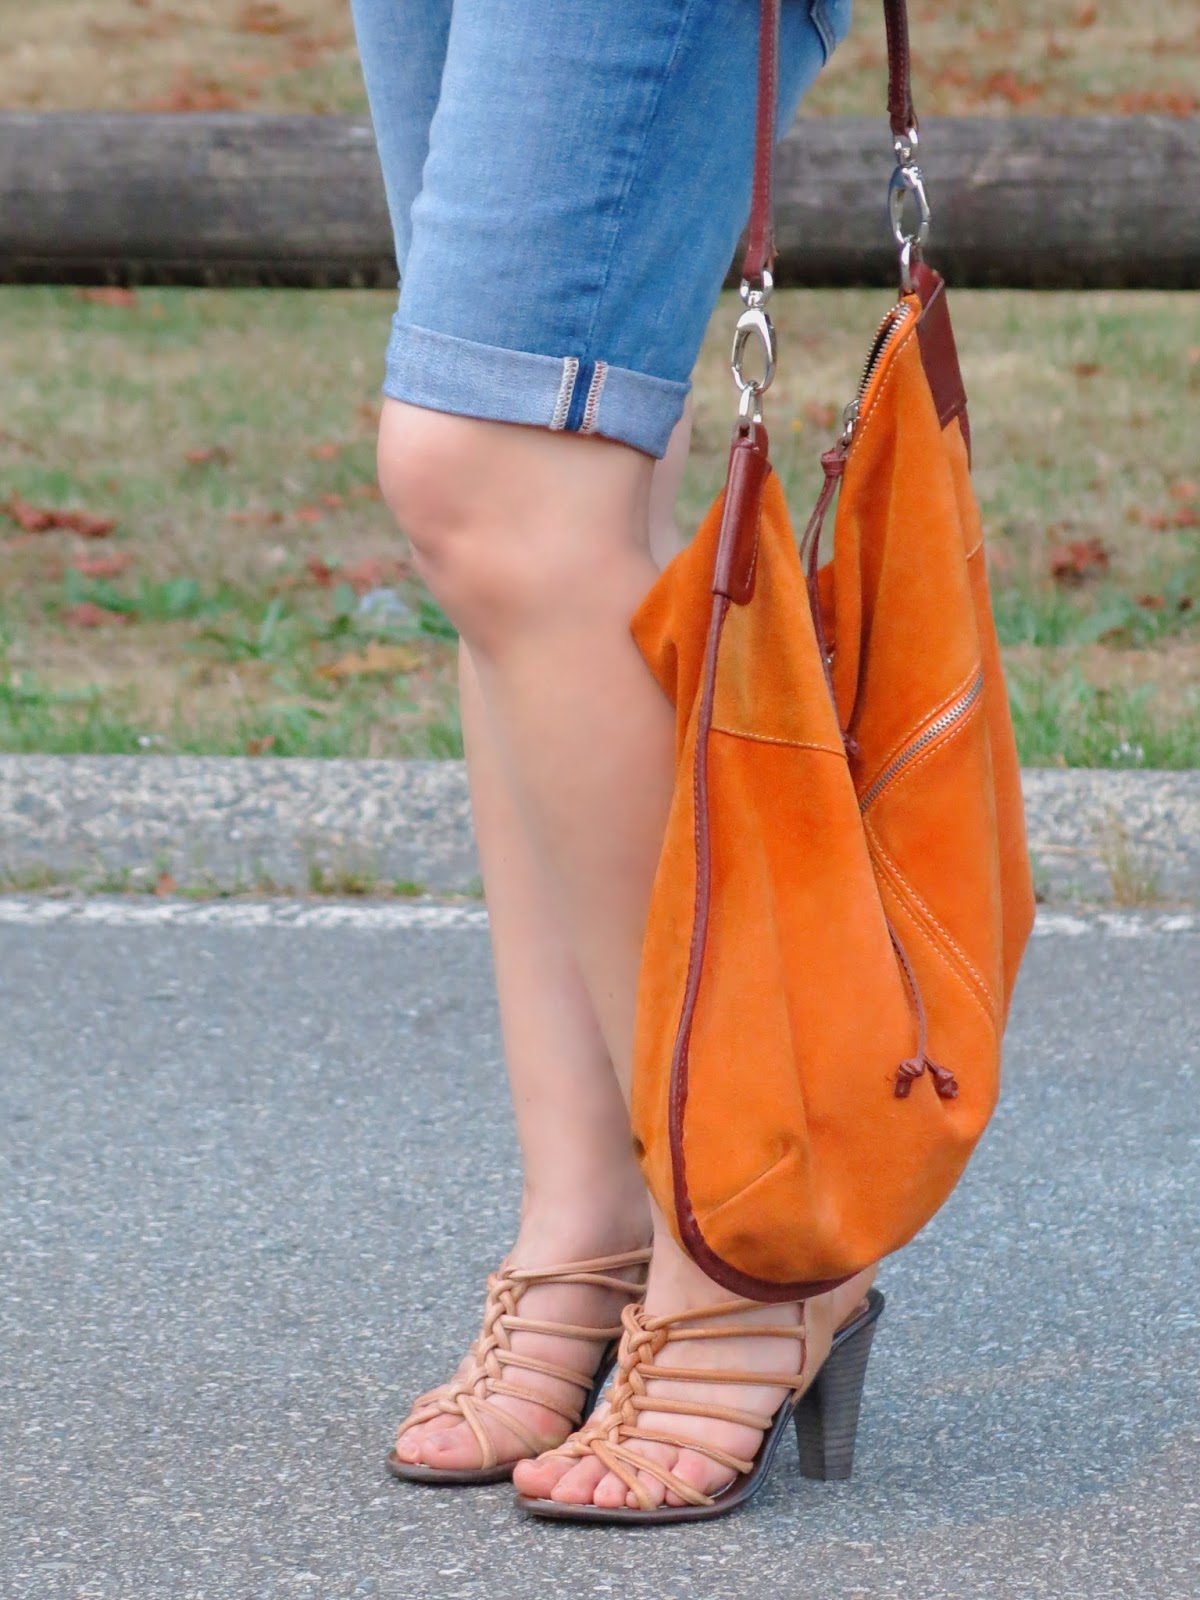 denim bermuda shorts, strappy nude sandals, and an orange suede bag